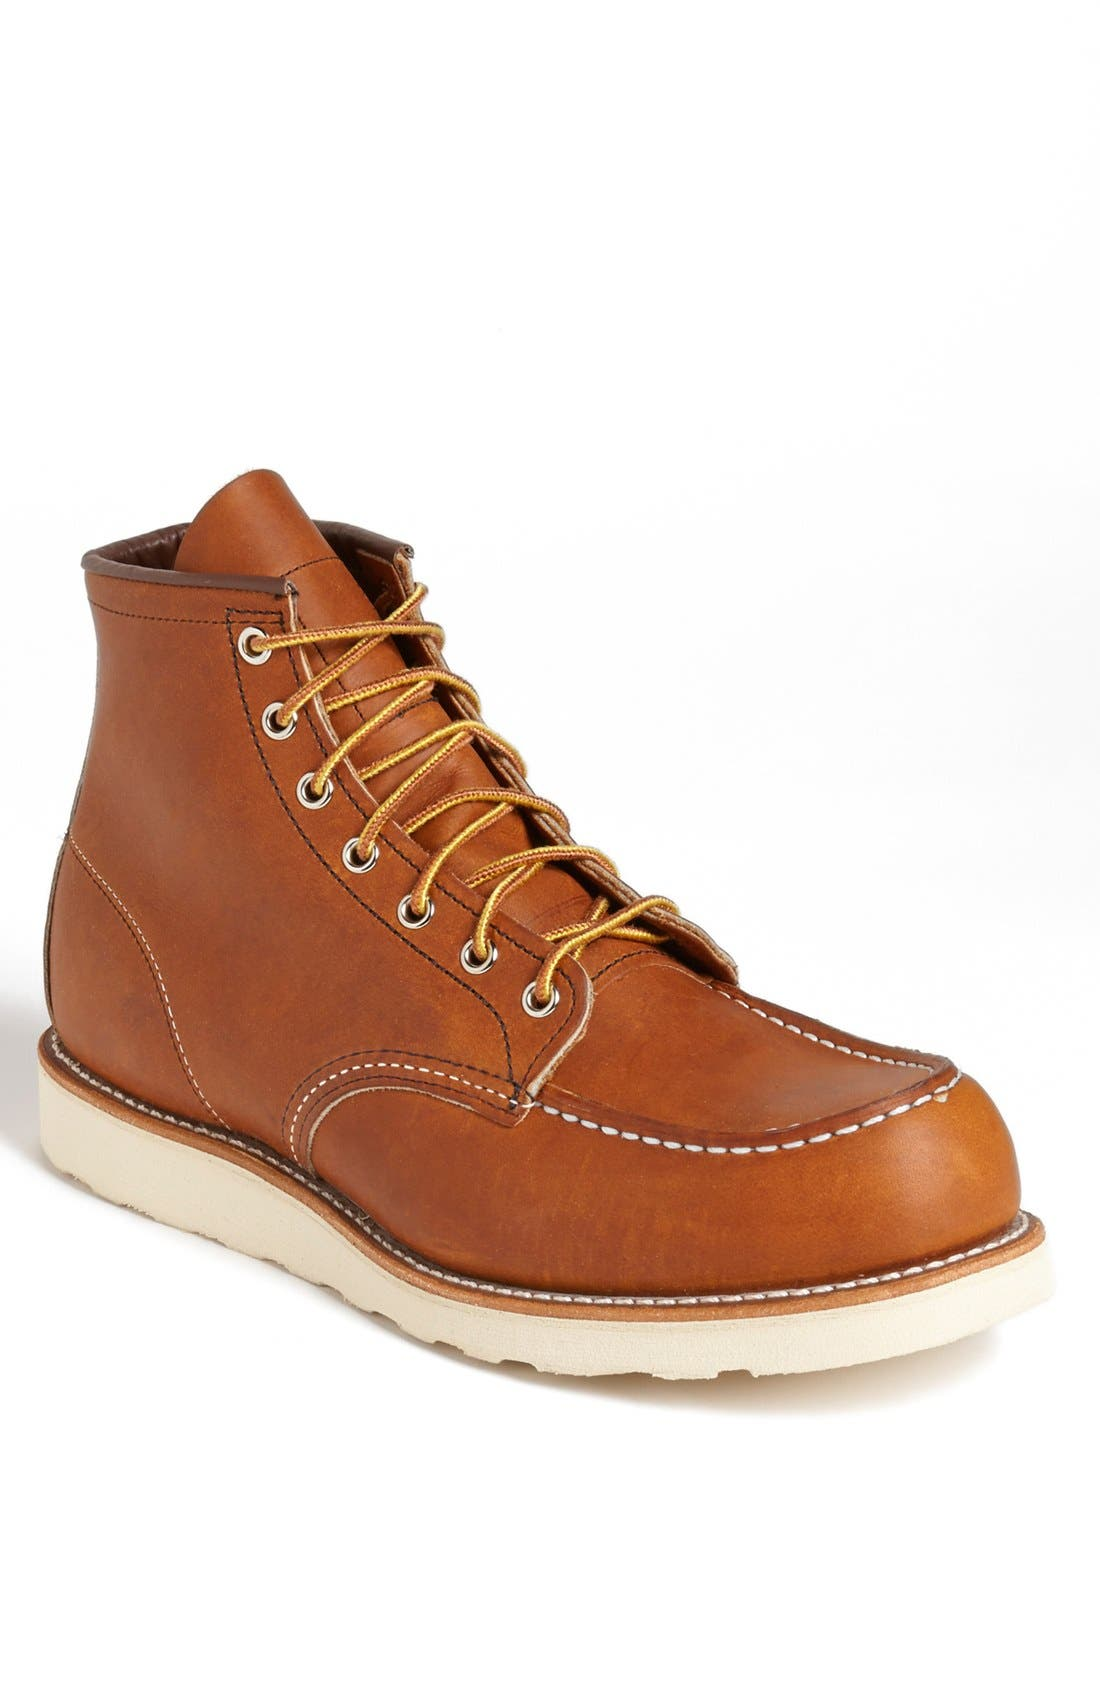 '875' 6 Inch Moc Toe Boot,                         Main,                         color, 200